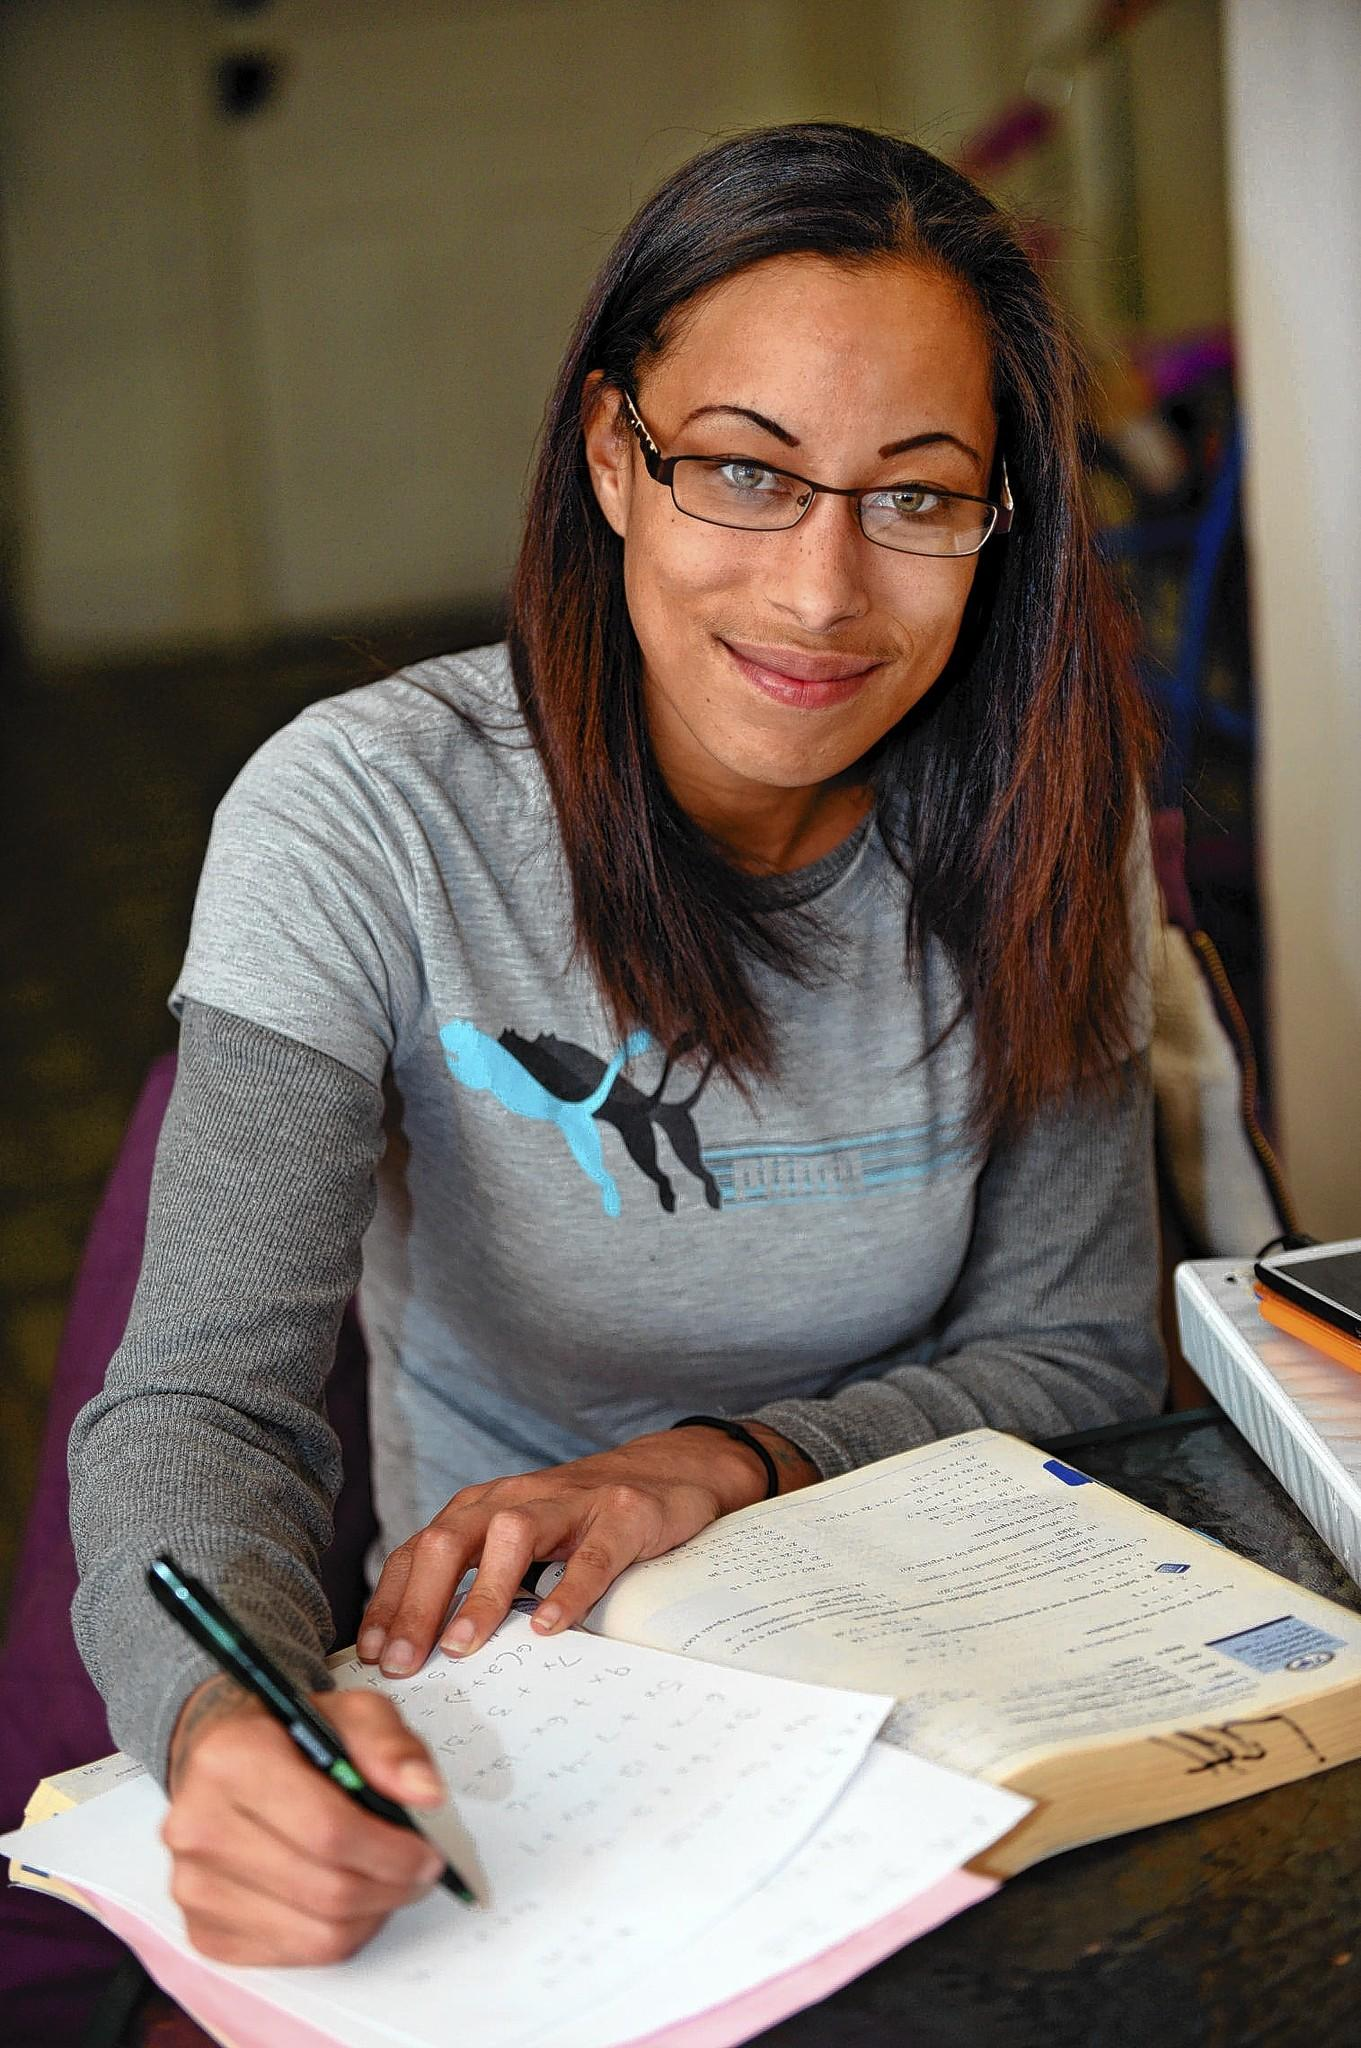 Sequoia Dennis of Allentown studies math in her home in preparation for taking the GED. She took and passed the final two parts of the high school equivalency test on Dec. 19 -- before a new tougher version of the test begins in January.